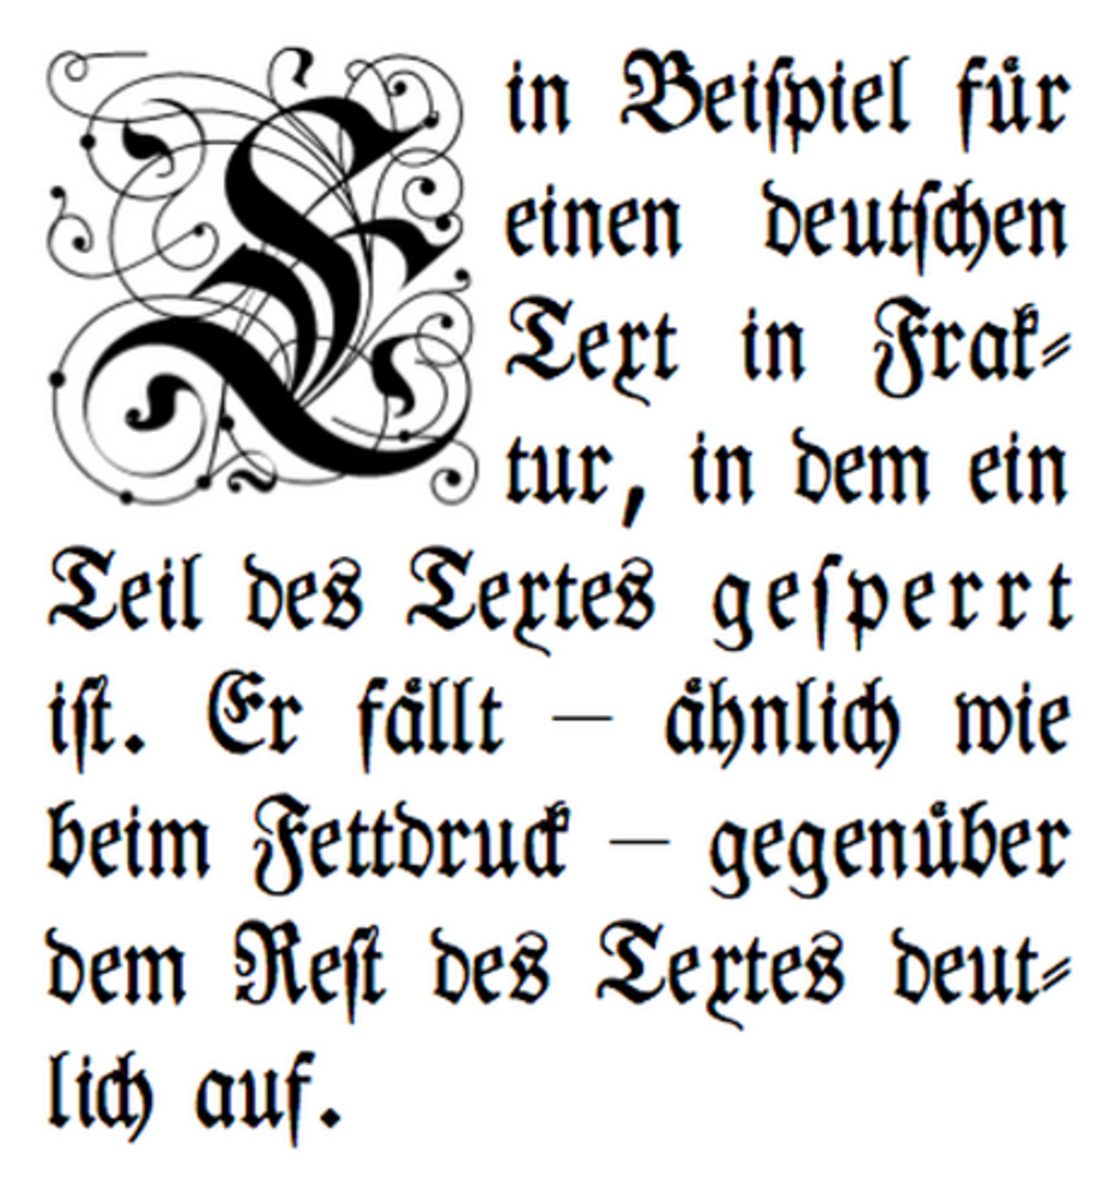 This font is sperrsatz, which is German, but has an antique feel. You could really go crazy designing ornate letters for your tattoo.